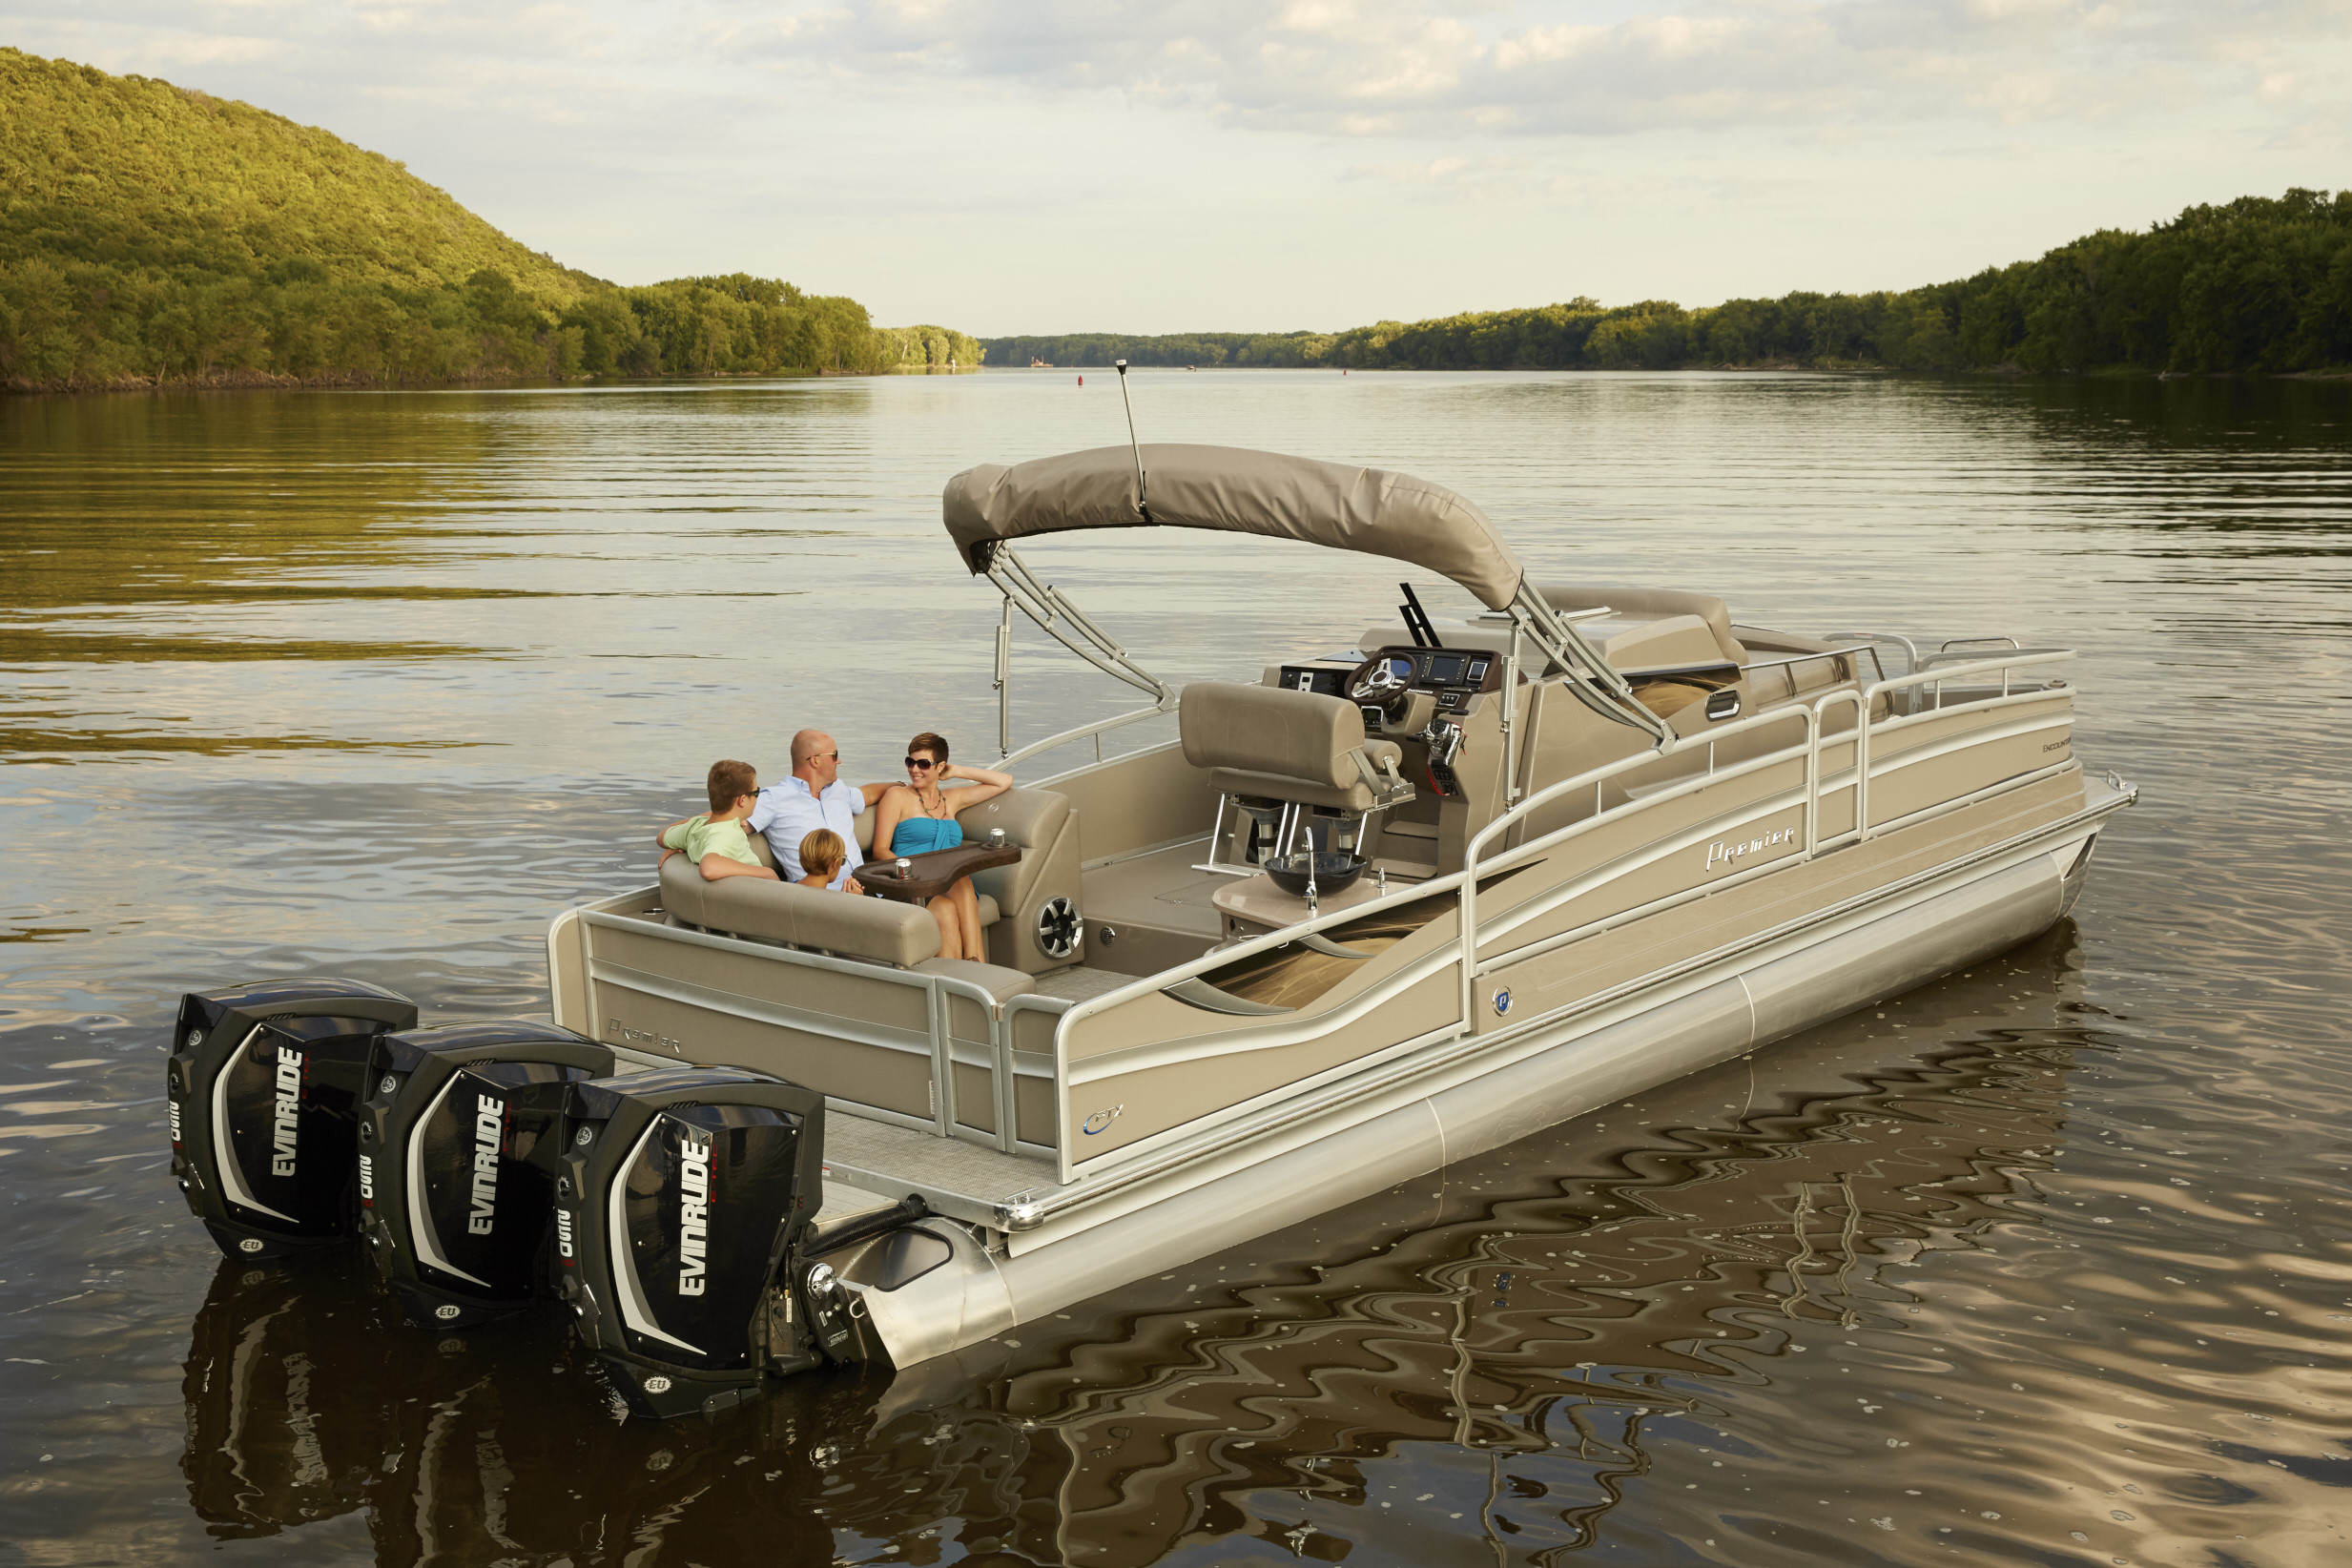 Premier Launches First Cabin Cruiser Company Newsroom Of